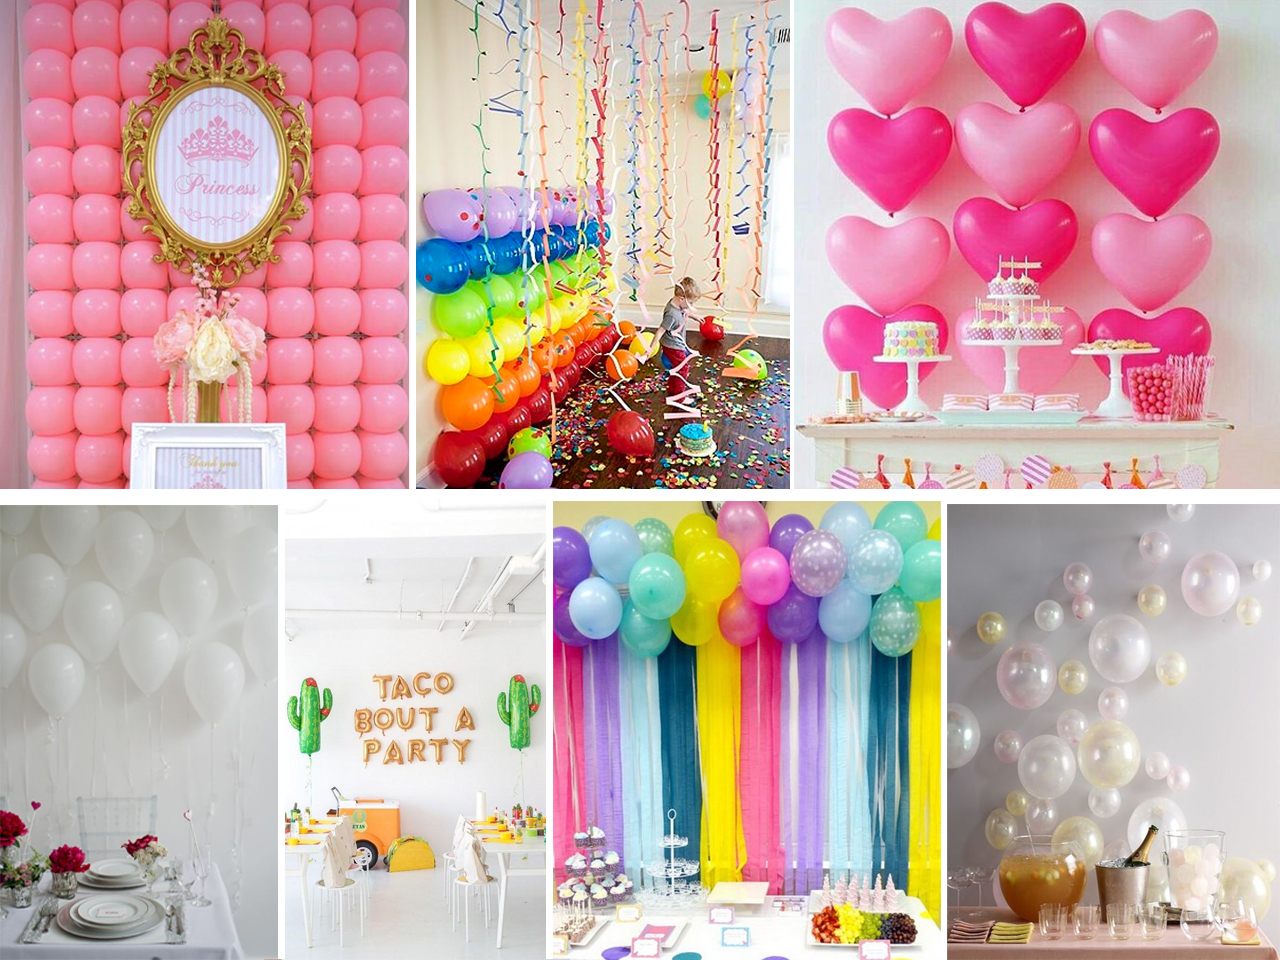 descubre c mo decorar con globos con estas fant sticas ideas